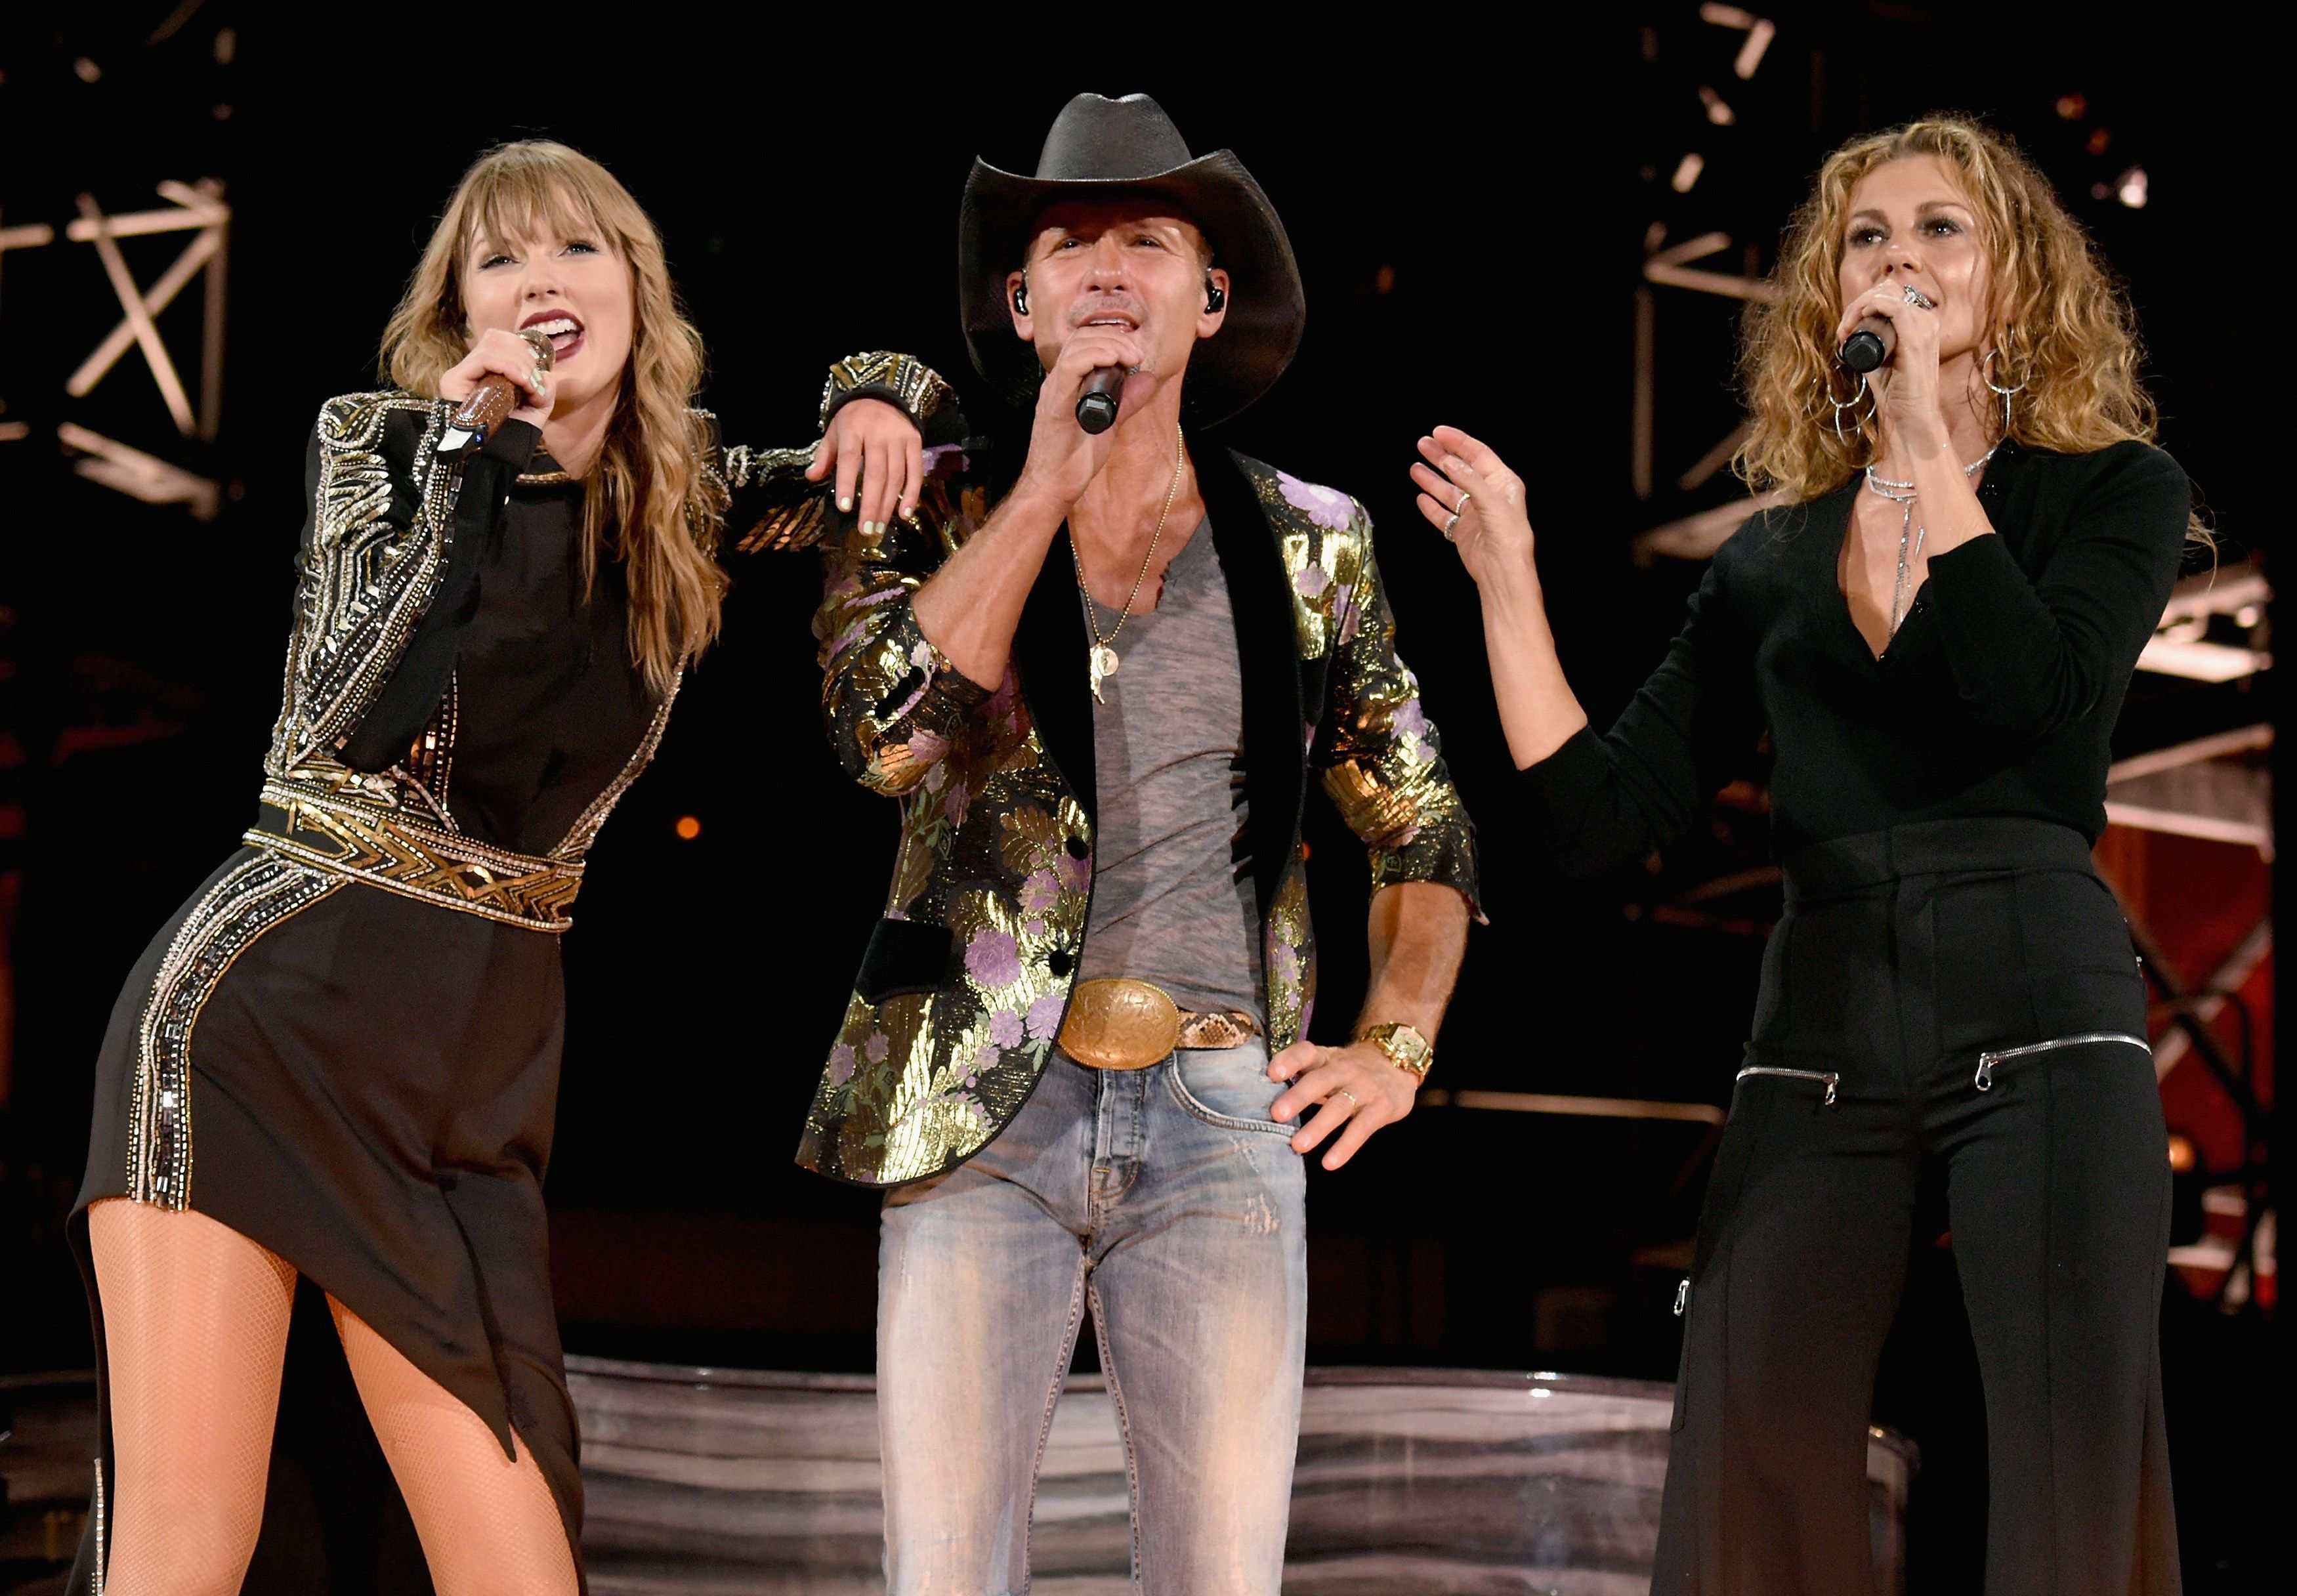 Tim Mcgraw And Faith Hill Sing Tim Mcgraw With Taylor Swift